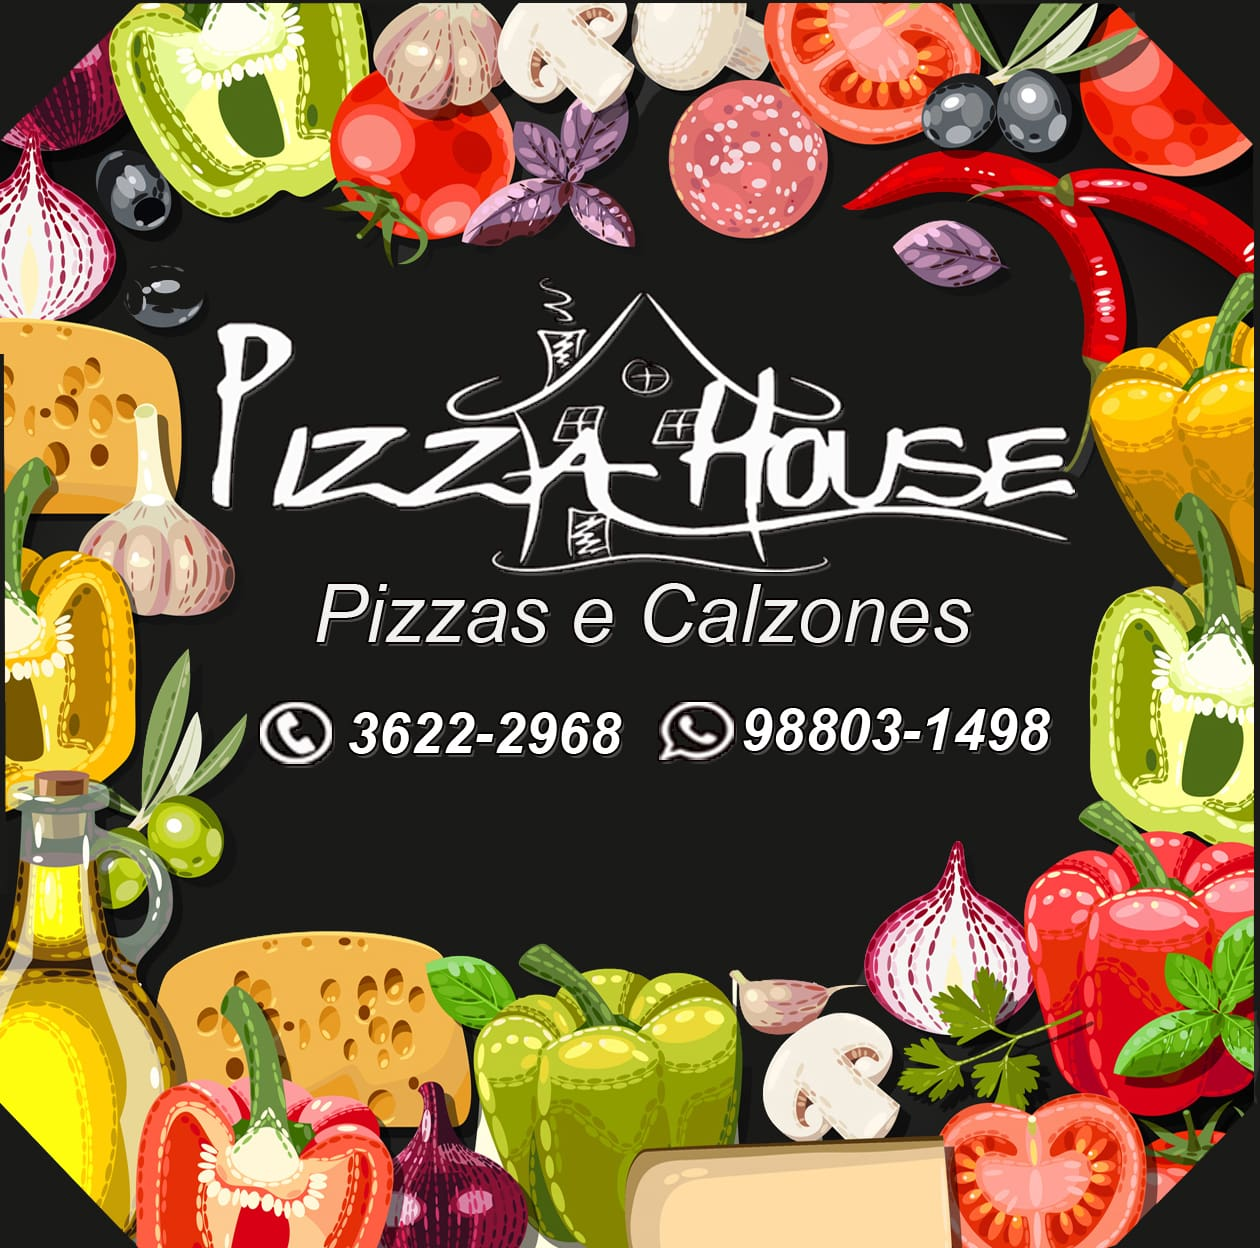 Pizza House Pizzas e Calzones